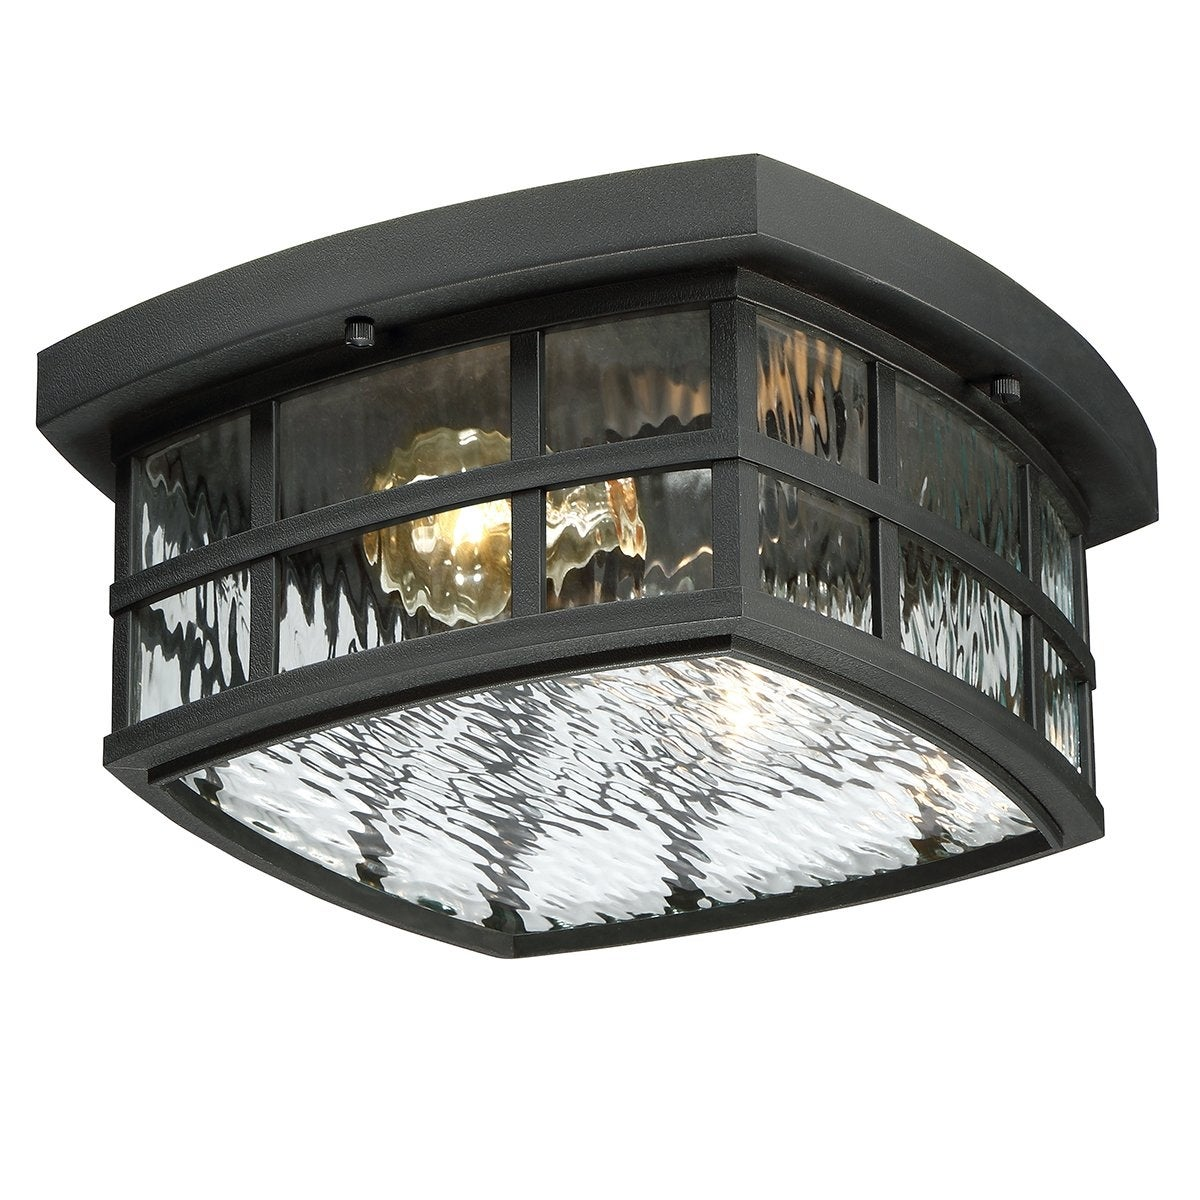 Luxury Craftsman Outdoor Ceiling Light 5 75 H X 12 W With Tudor Style Highly Detailed Design Black Silk Finish Overstock 19477822